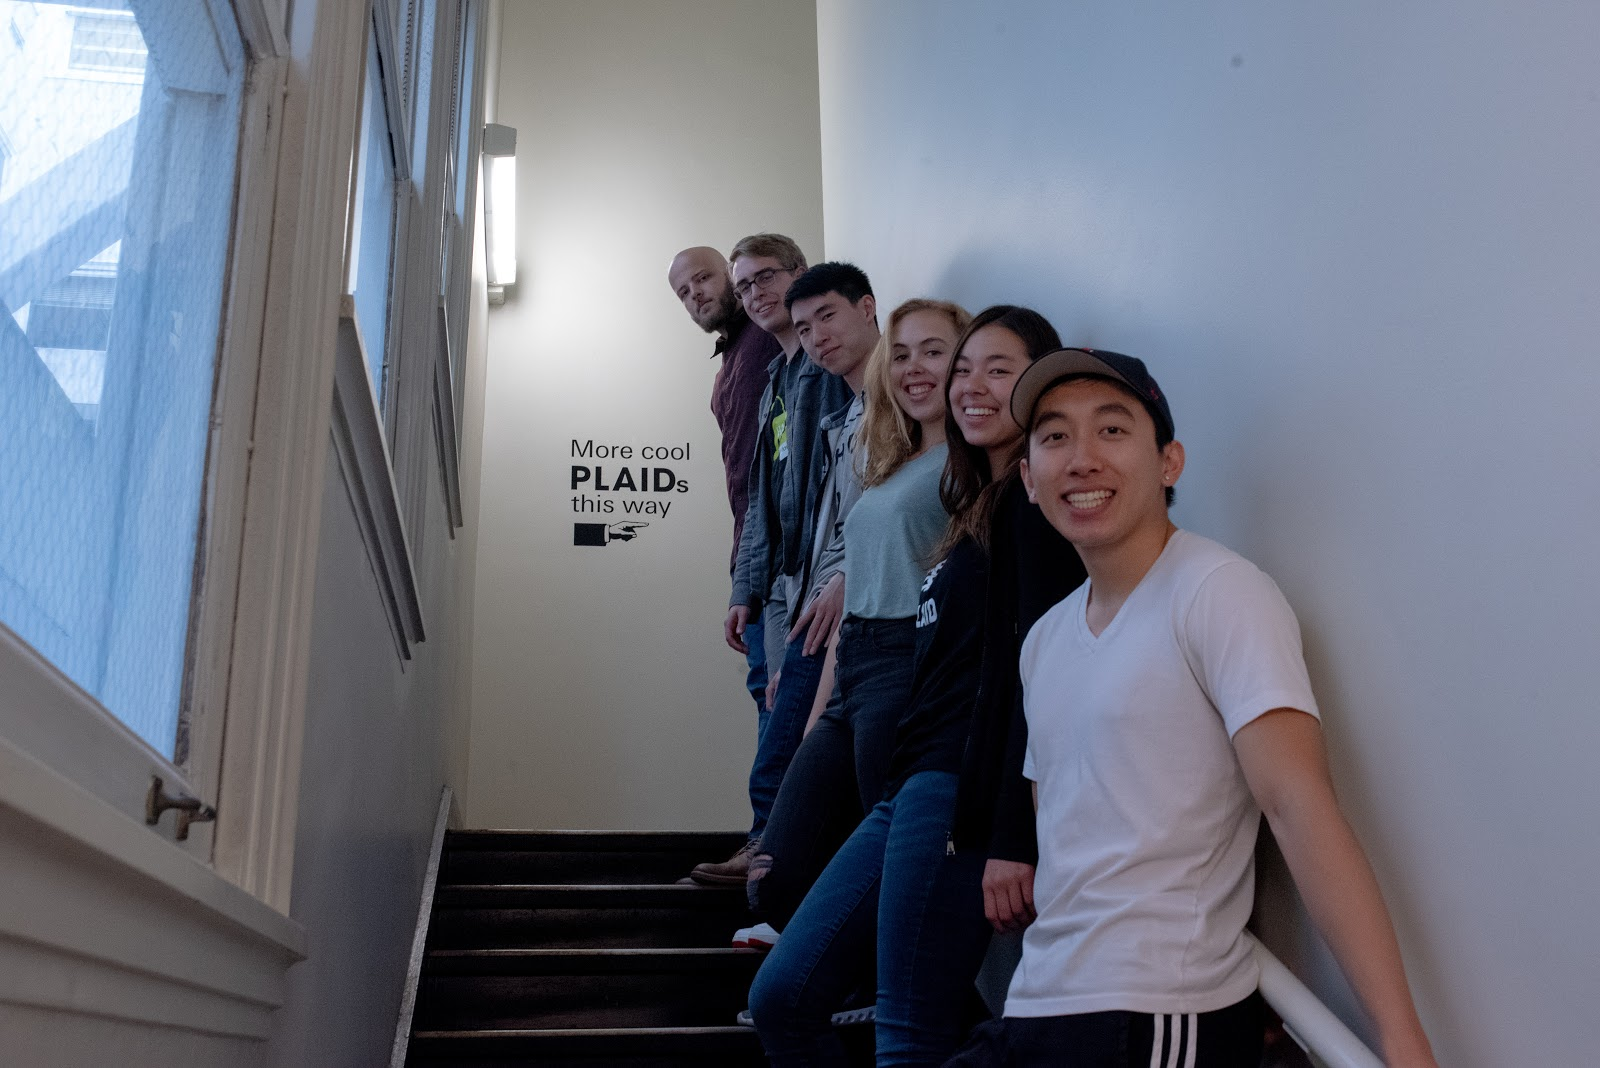 The Plintern team from front to back: Andrew Chen, Jennifer McCleary, Sarafina Smith, Lujing Cen, Owen Gillespie, and Jarrod Dunne. Not pictured: Eric Fortney